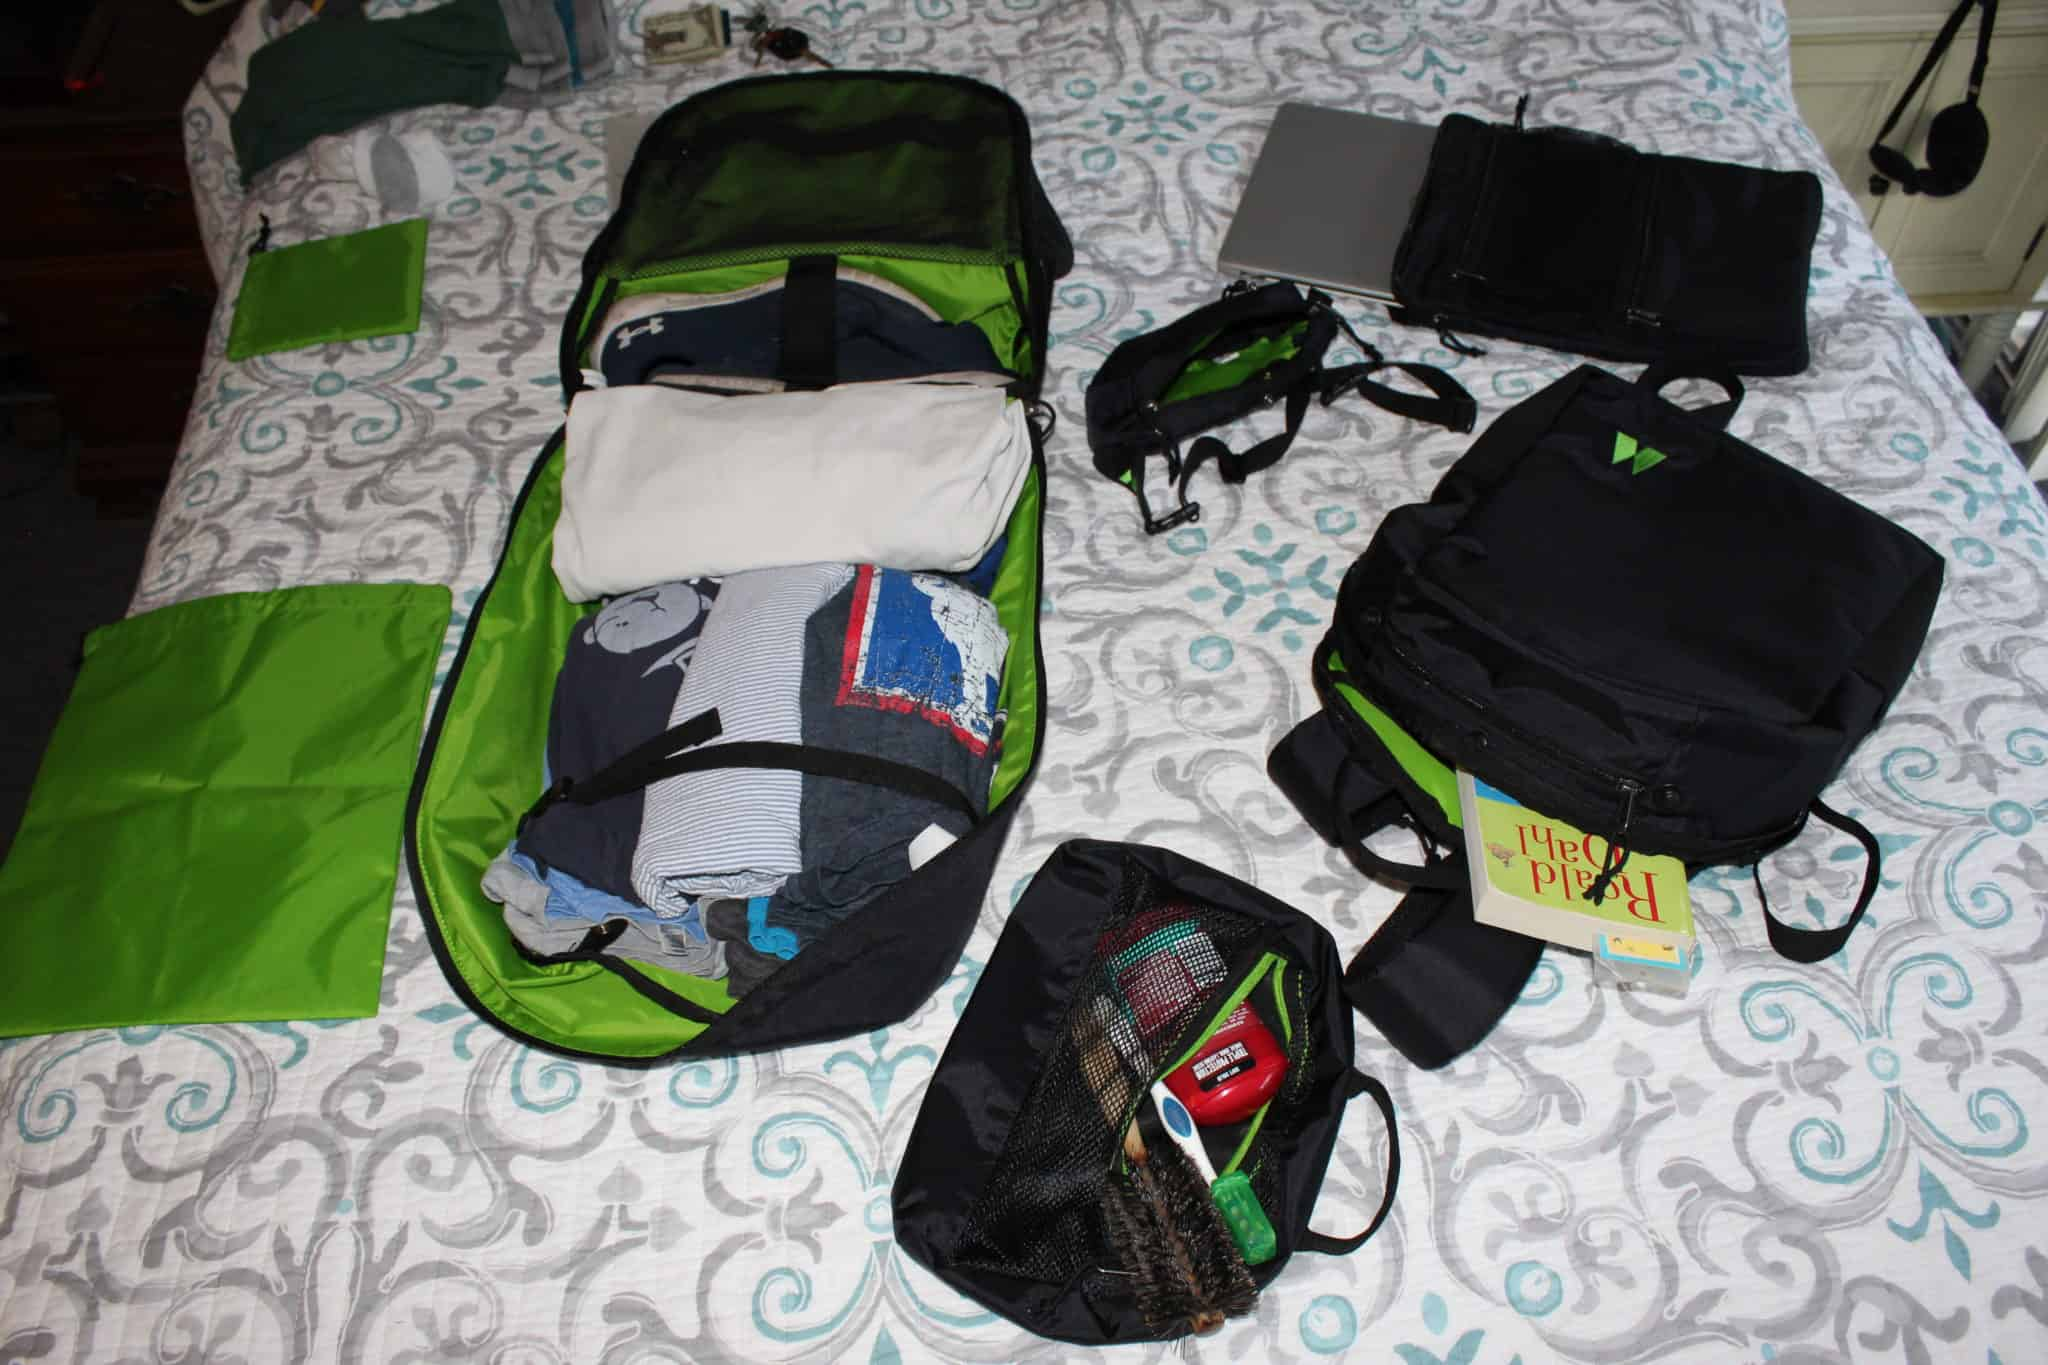 Packing up the 5 compartments of the Journey System Minimalist Travel Bag